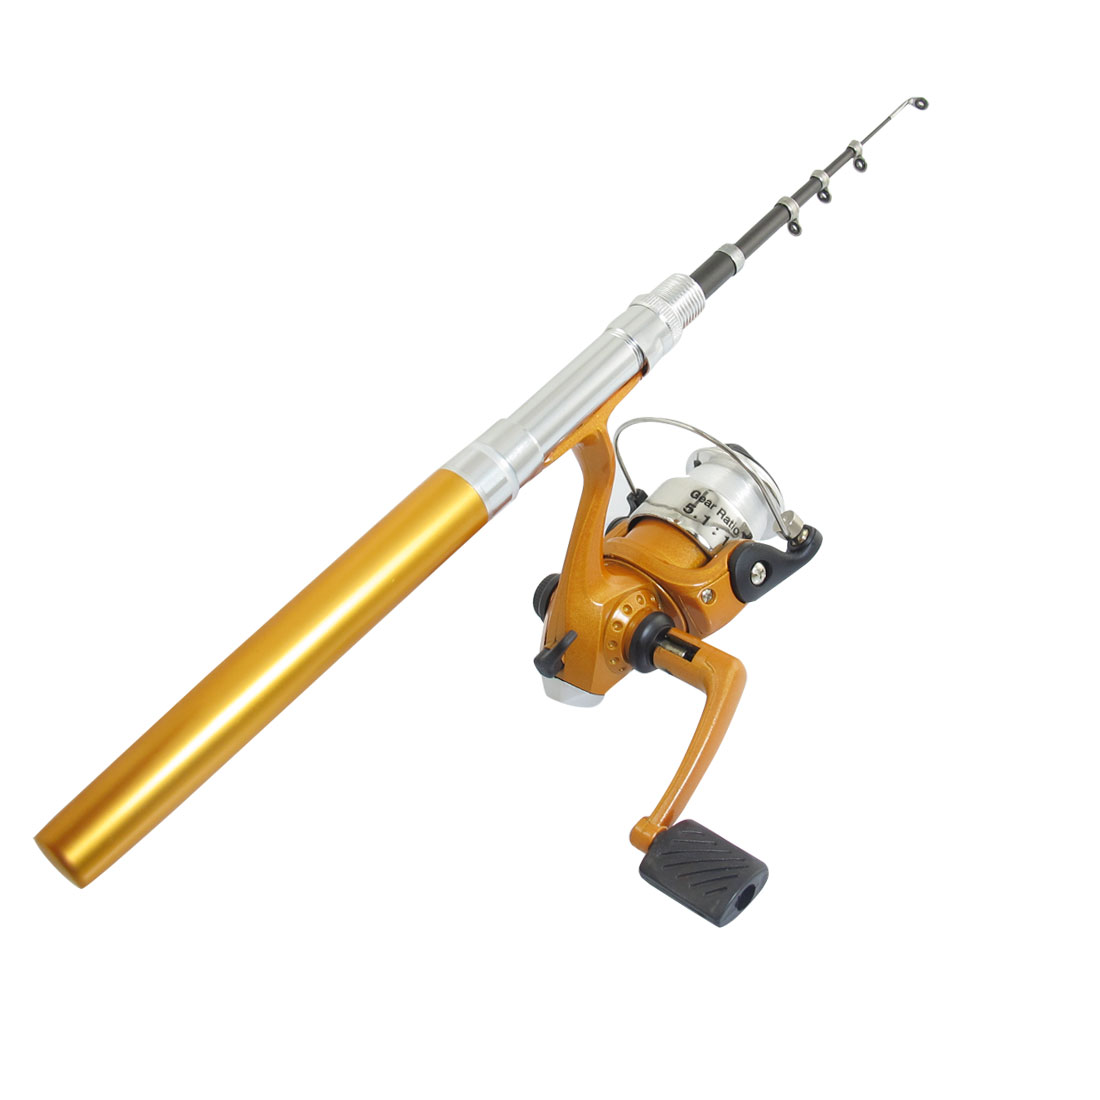 Portable 6 Sections Telescopic Mini Pen Fishing Rod Spinning Reel Gold Tone 42""